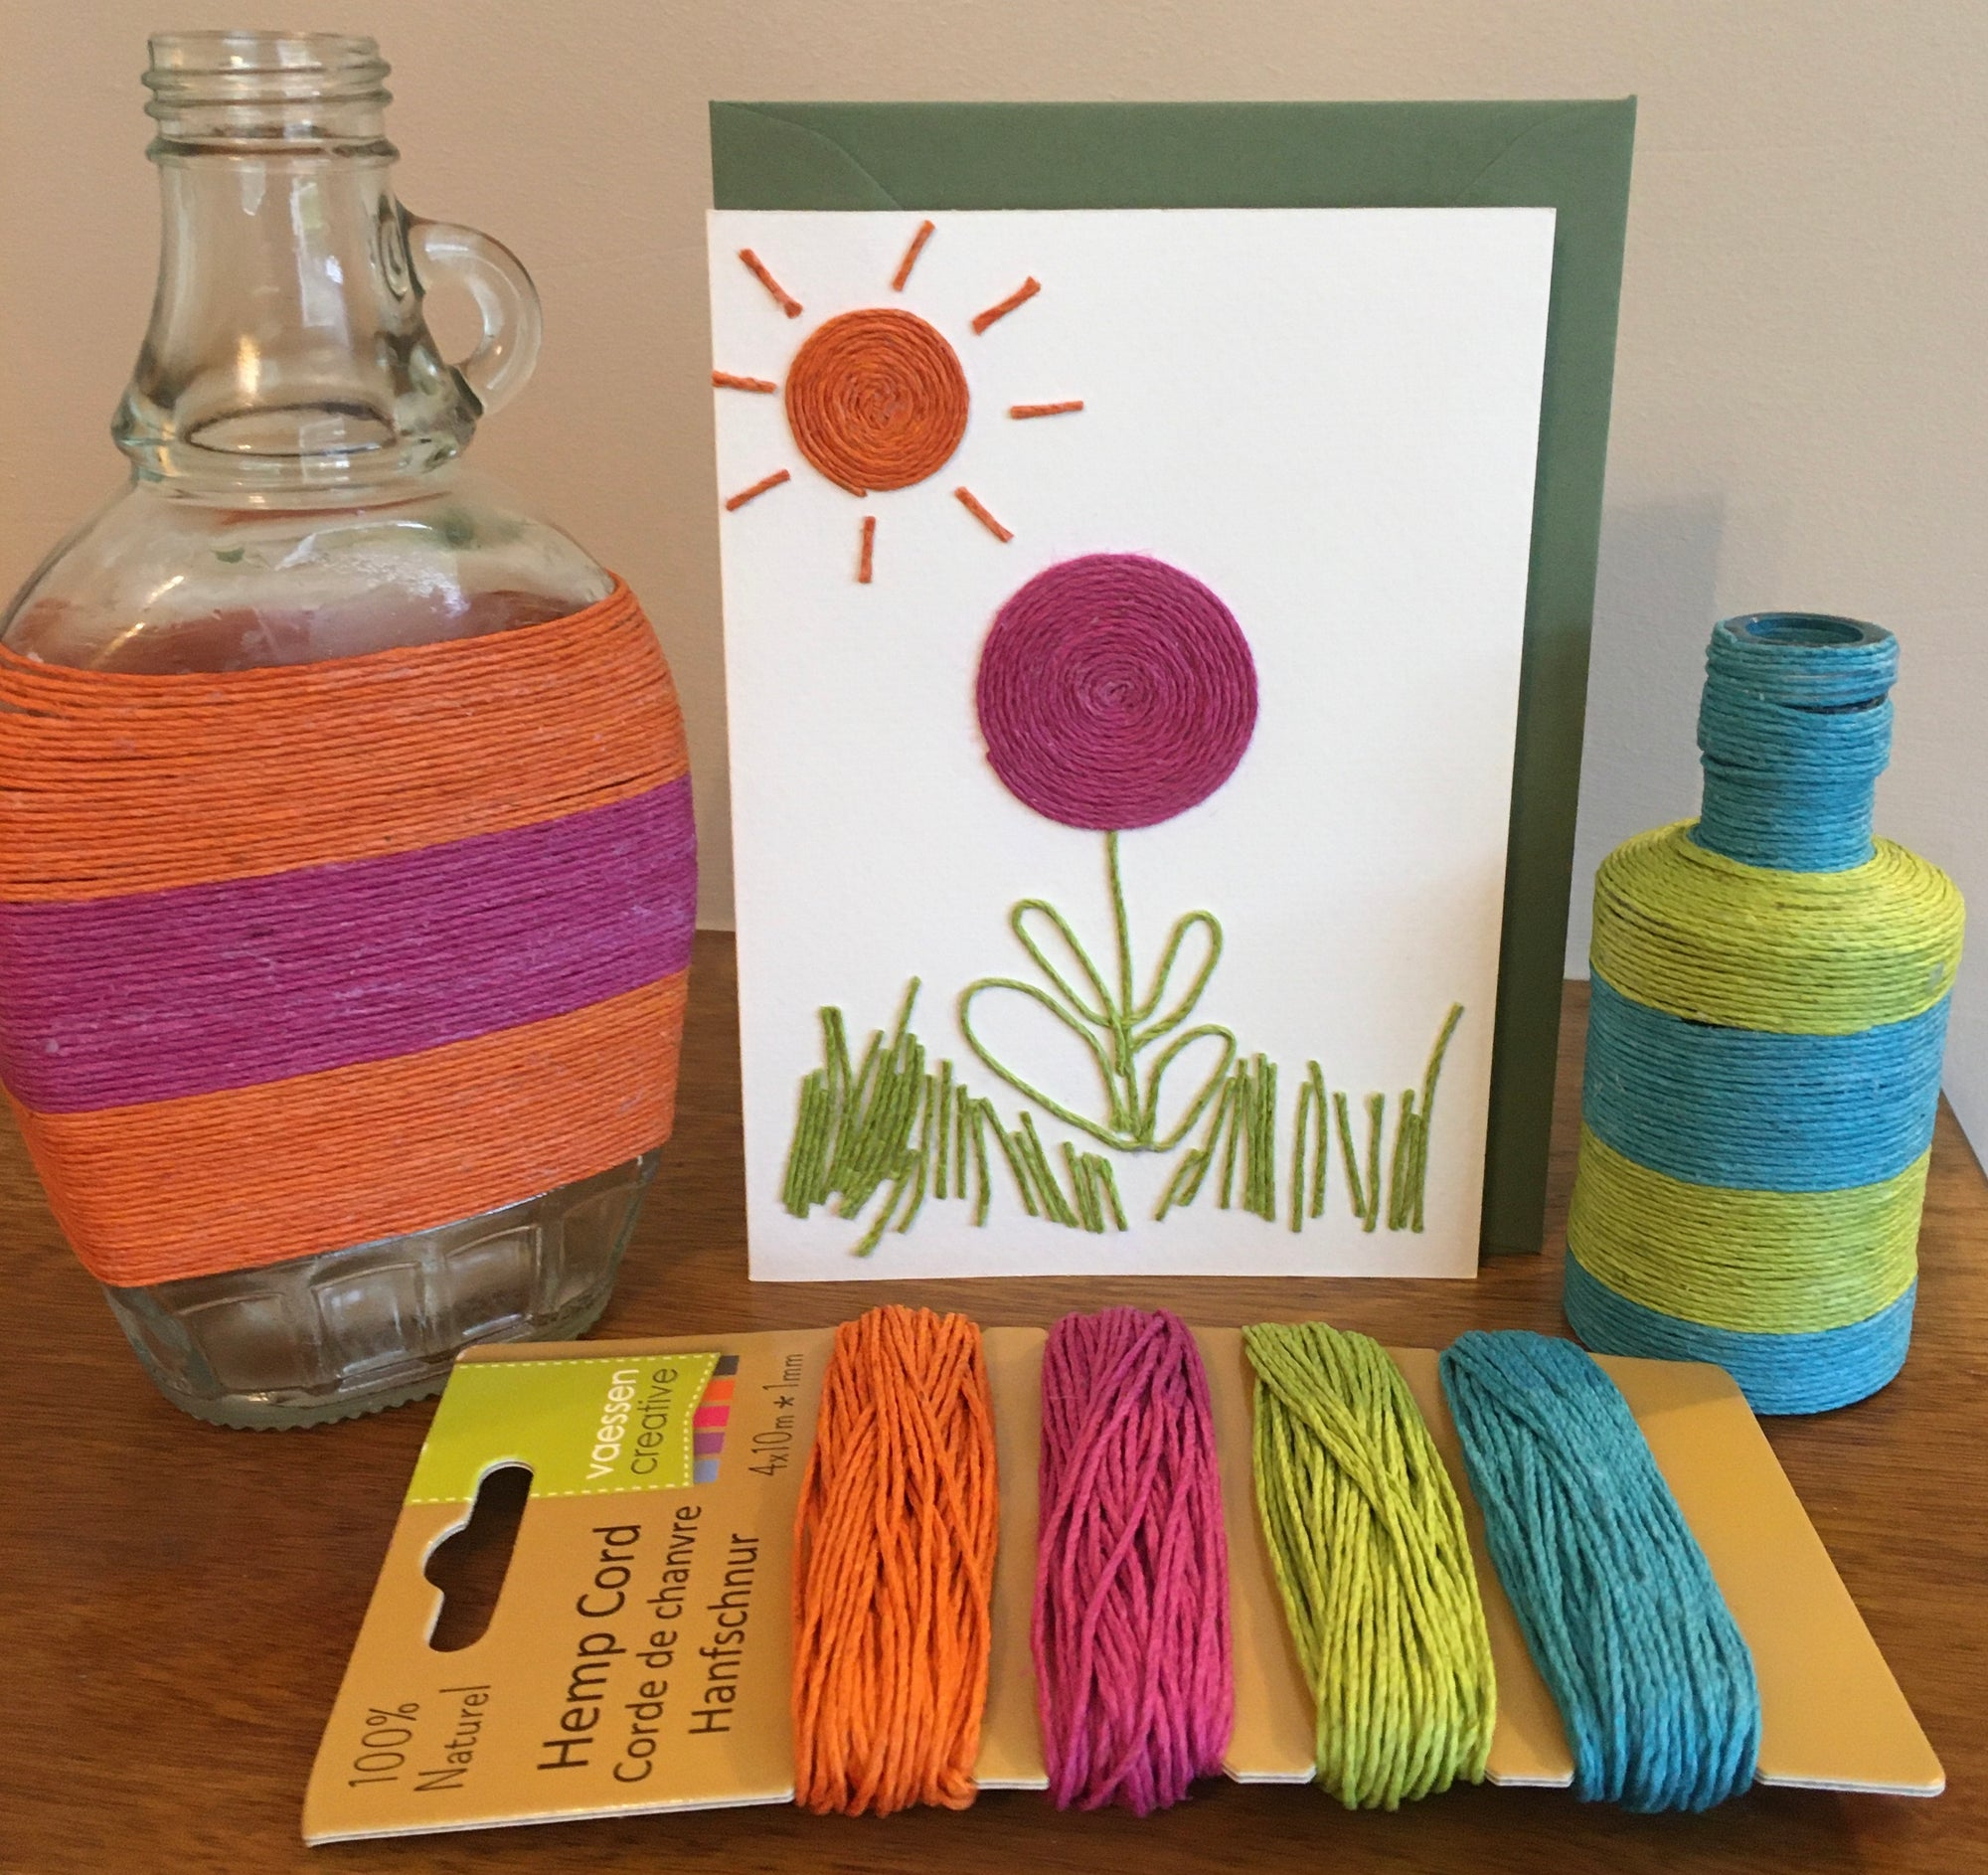 Use hemp cord for crafting ideas